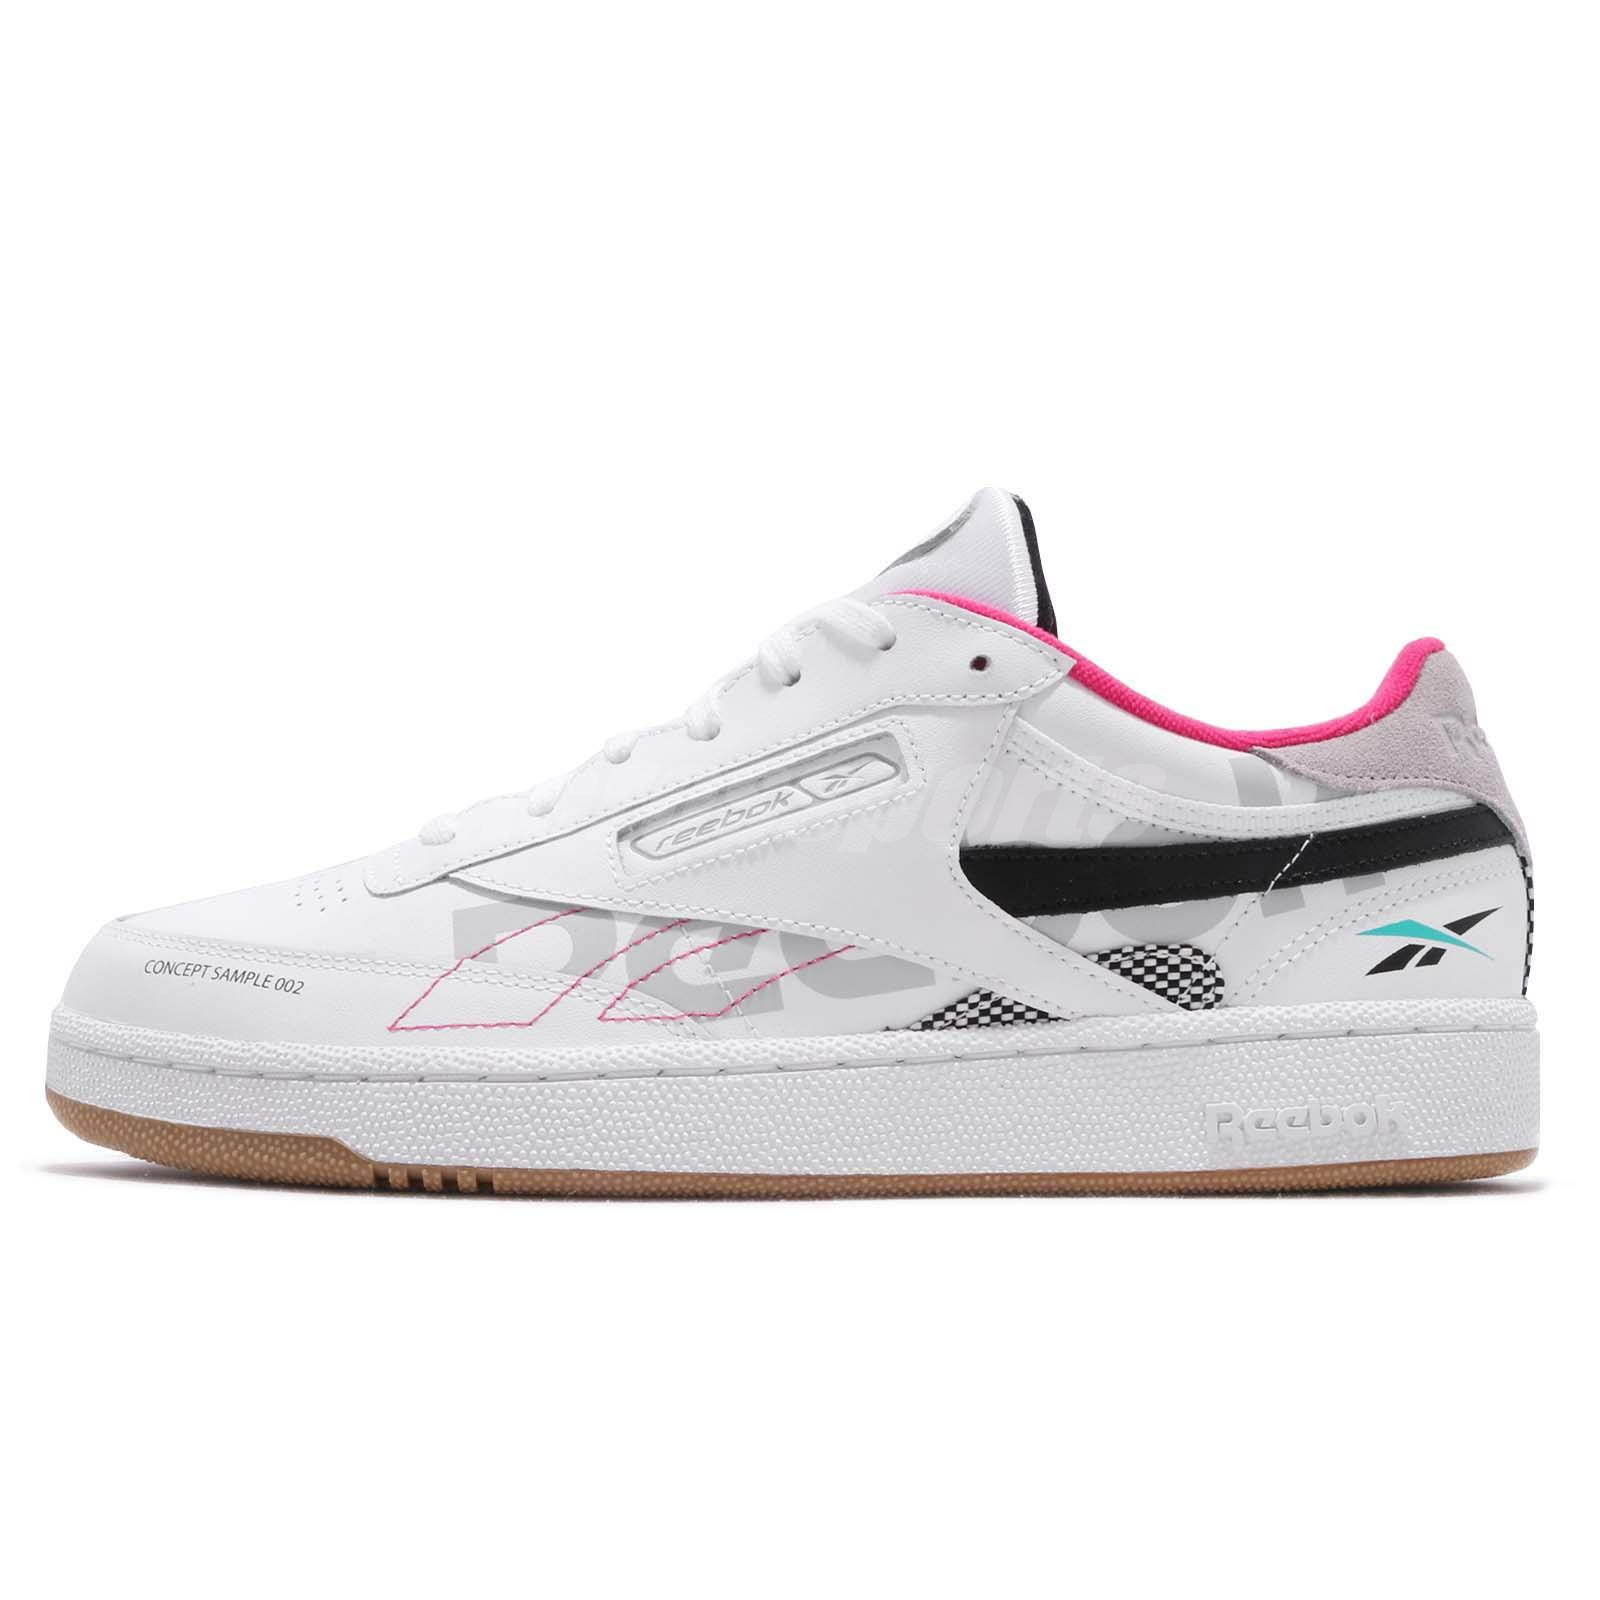 ba9a25ee3ba7 Reebok Club C 85 ATI 90s White Teal Black Grey Pink Gum Men Casual Shoes  DV8962